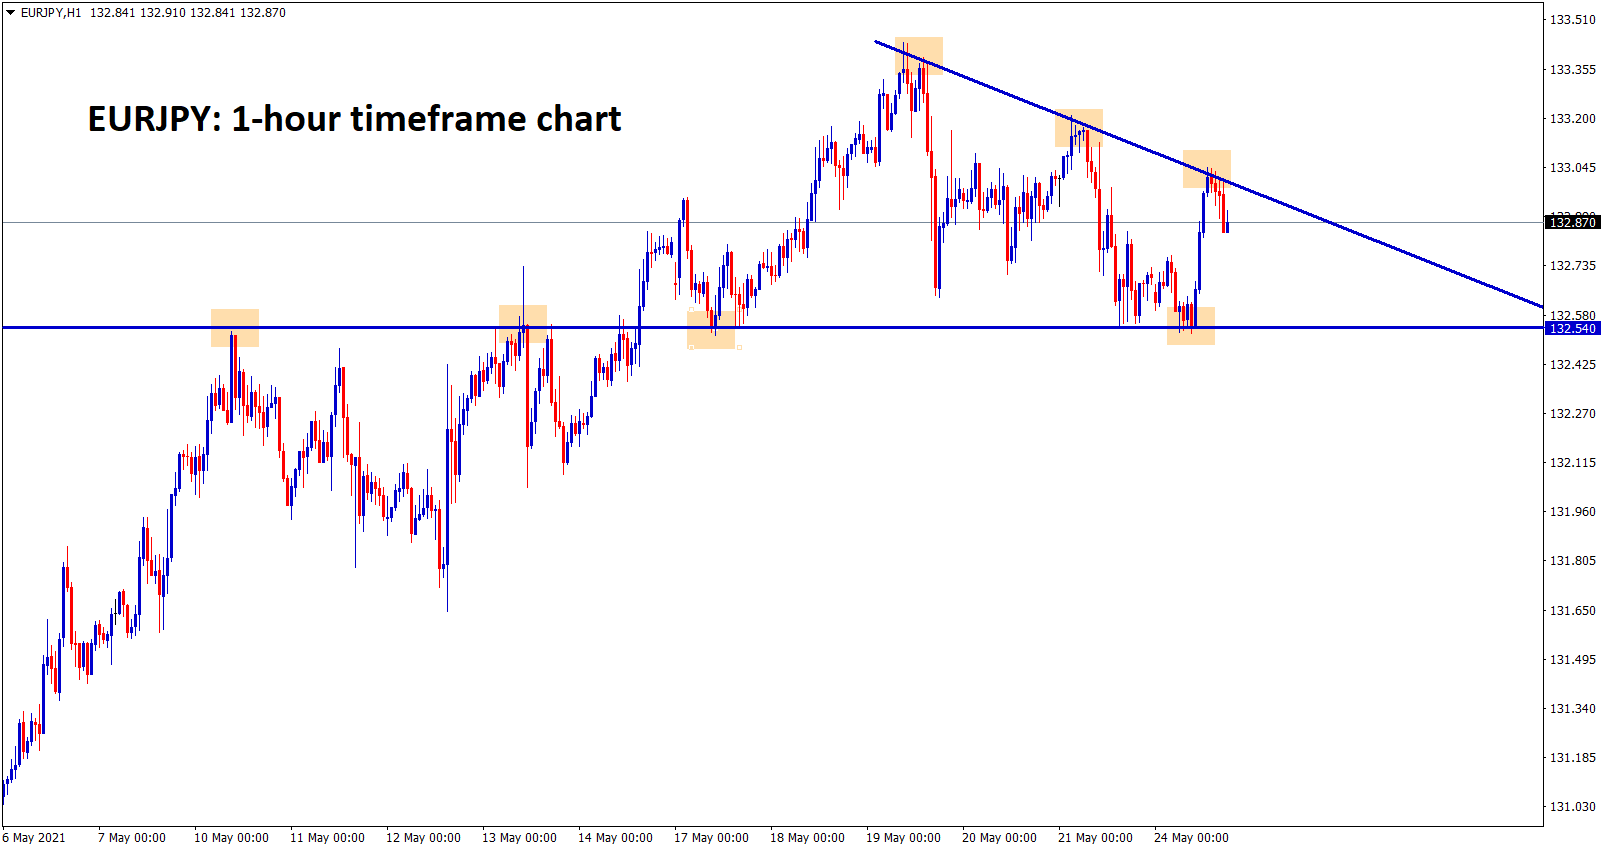 EURJPY is moving in a descending Triangle pattern